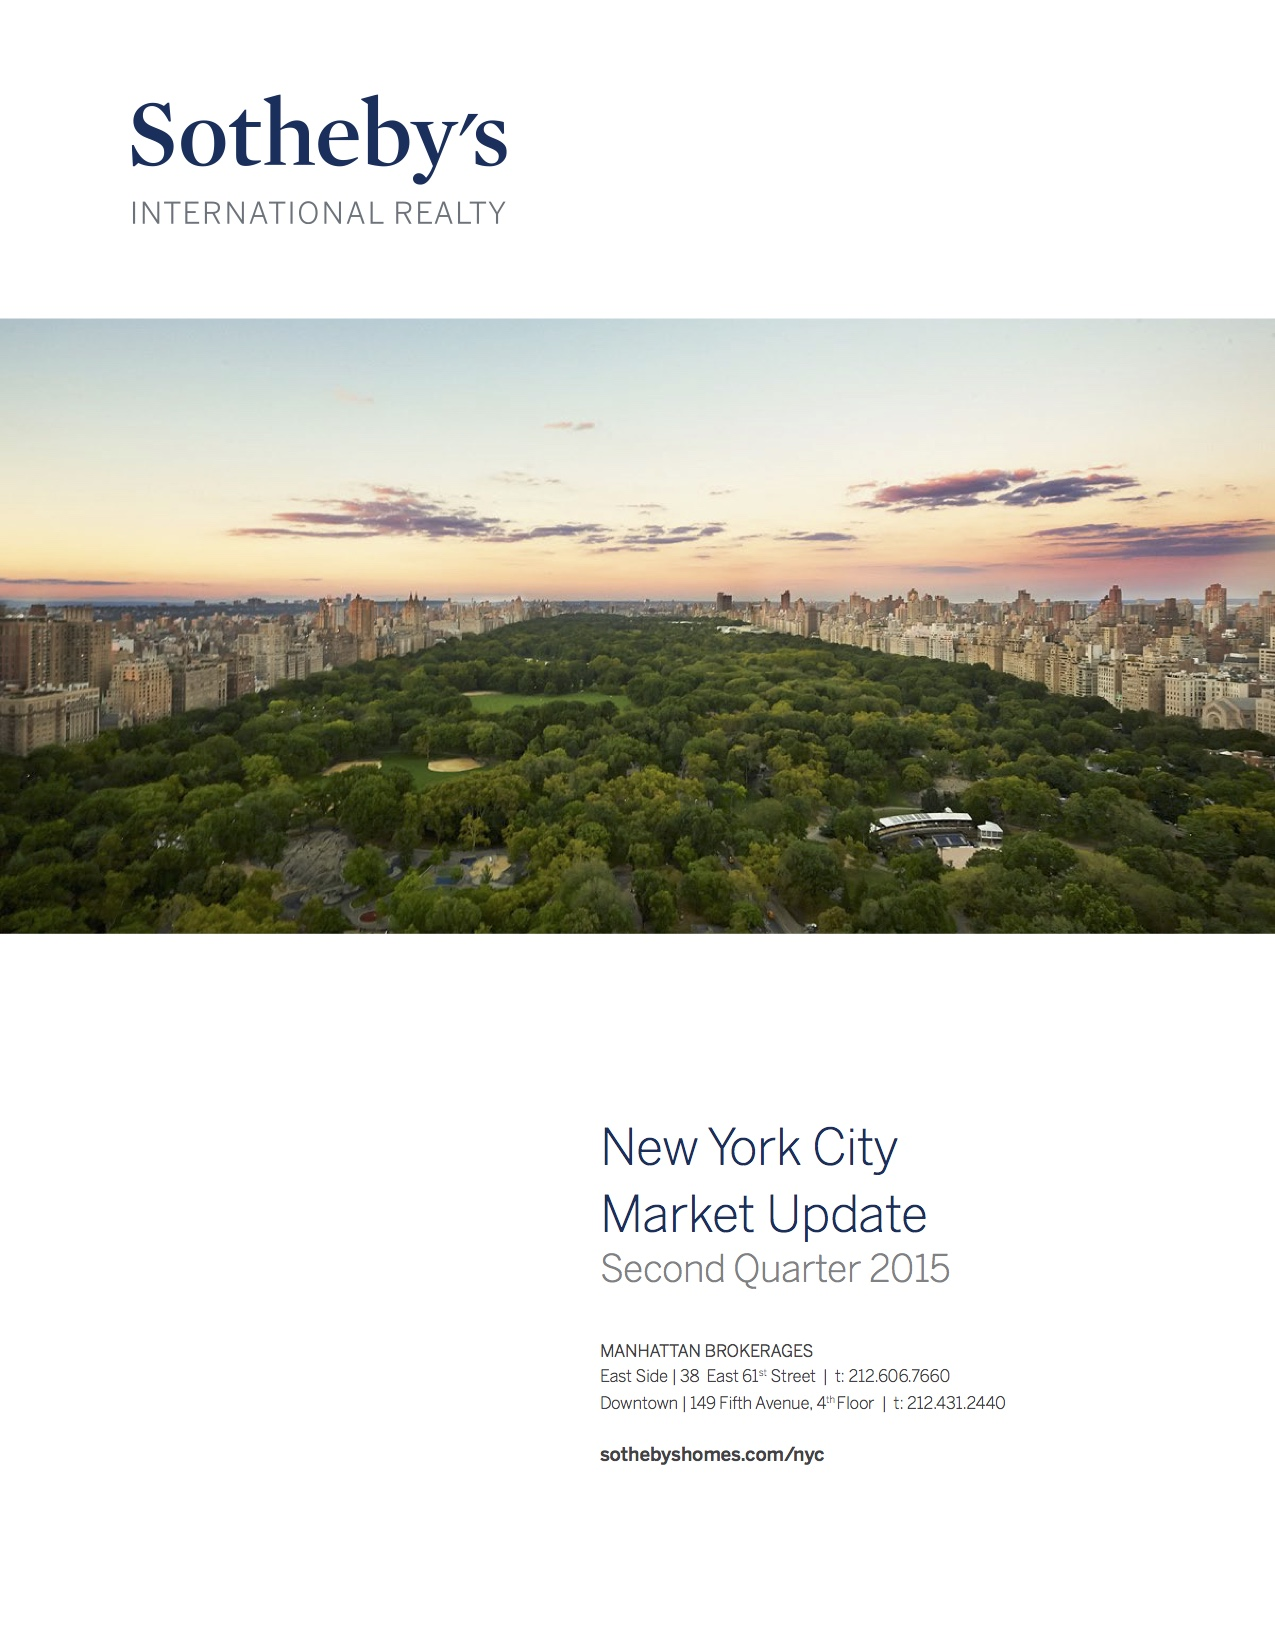 SothebysInternationalRealty_Manhattan_MarketReport_2Q2015_1.jpg